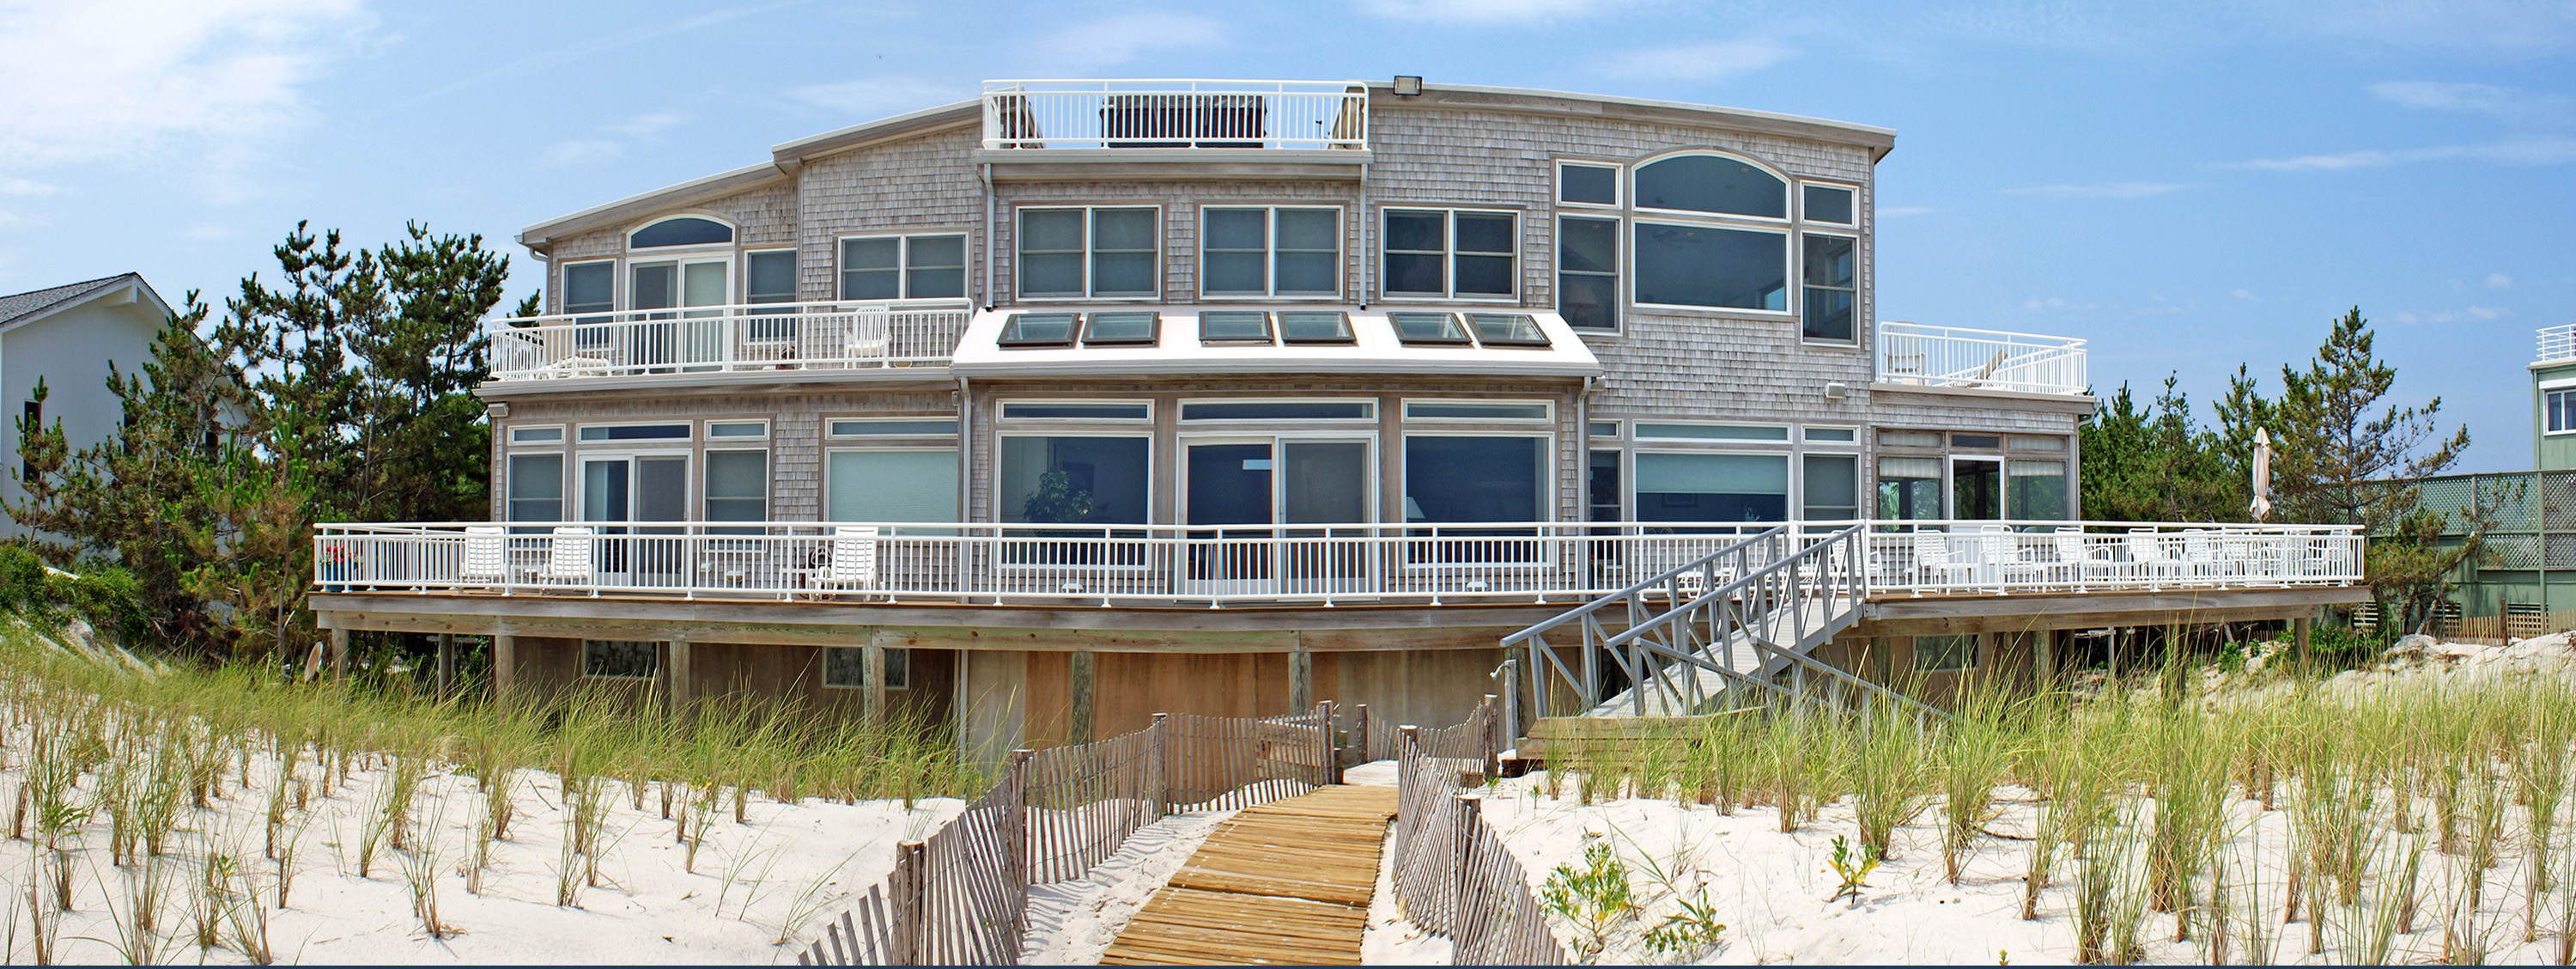 Long Beach Island Nj Properties For Sale